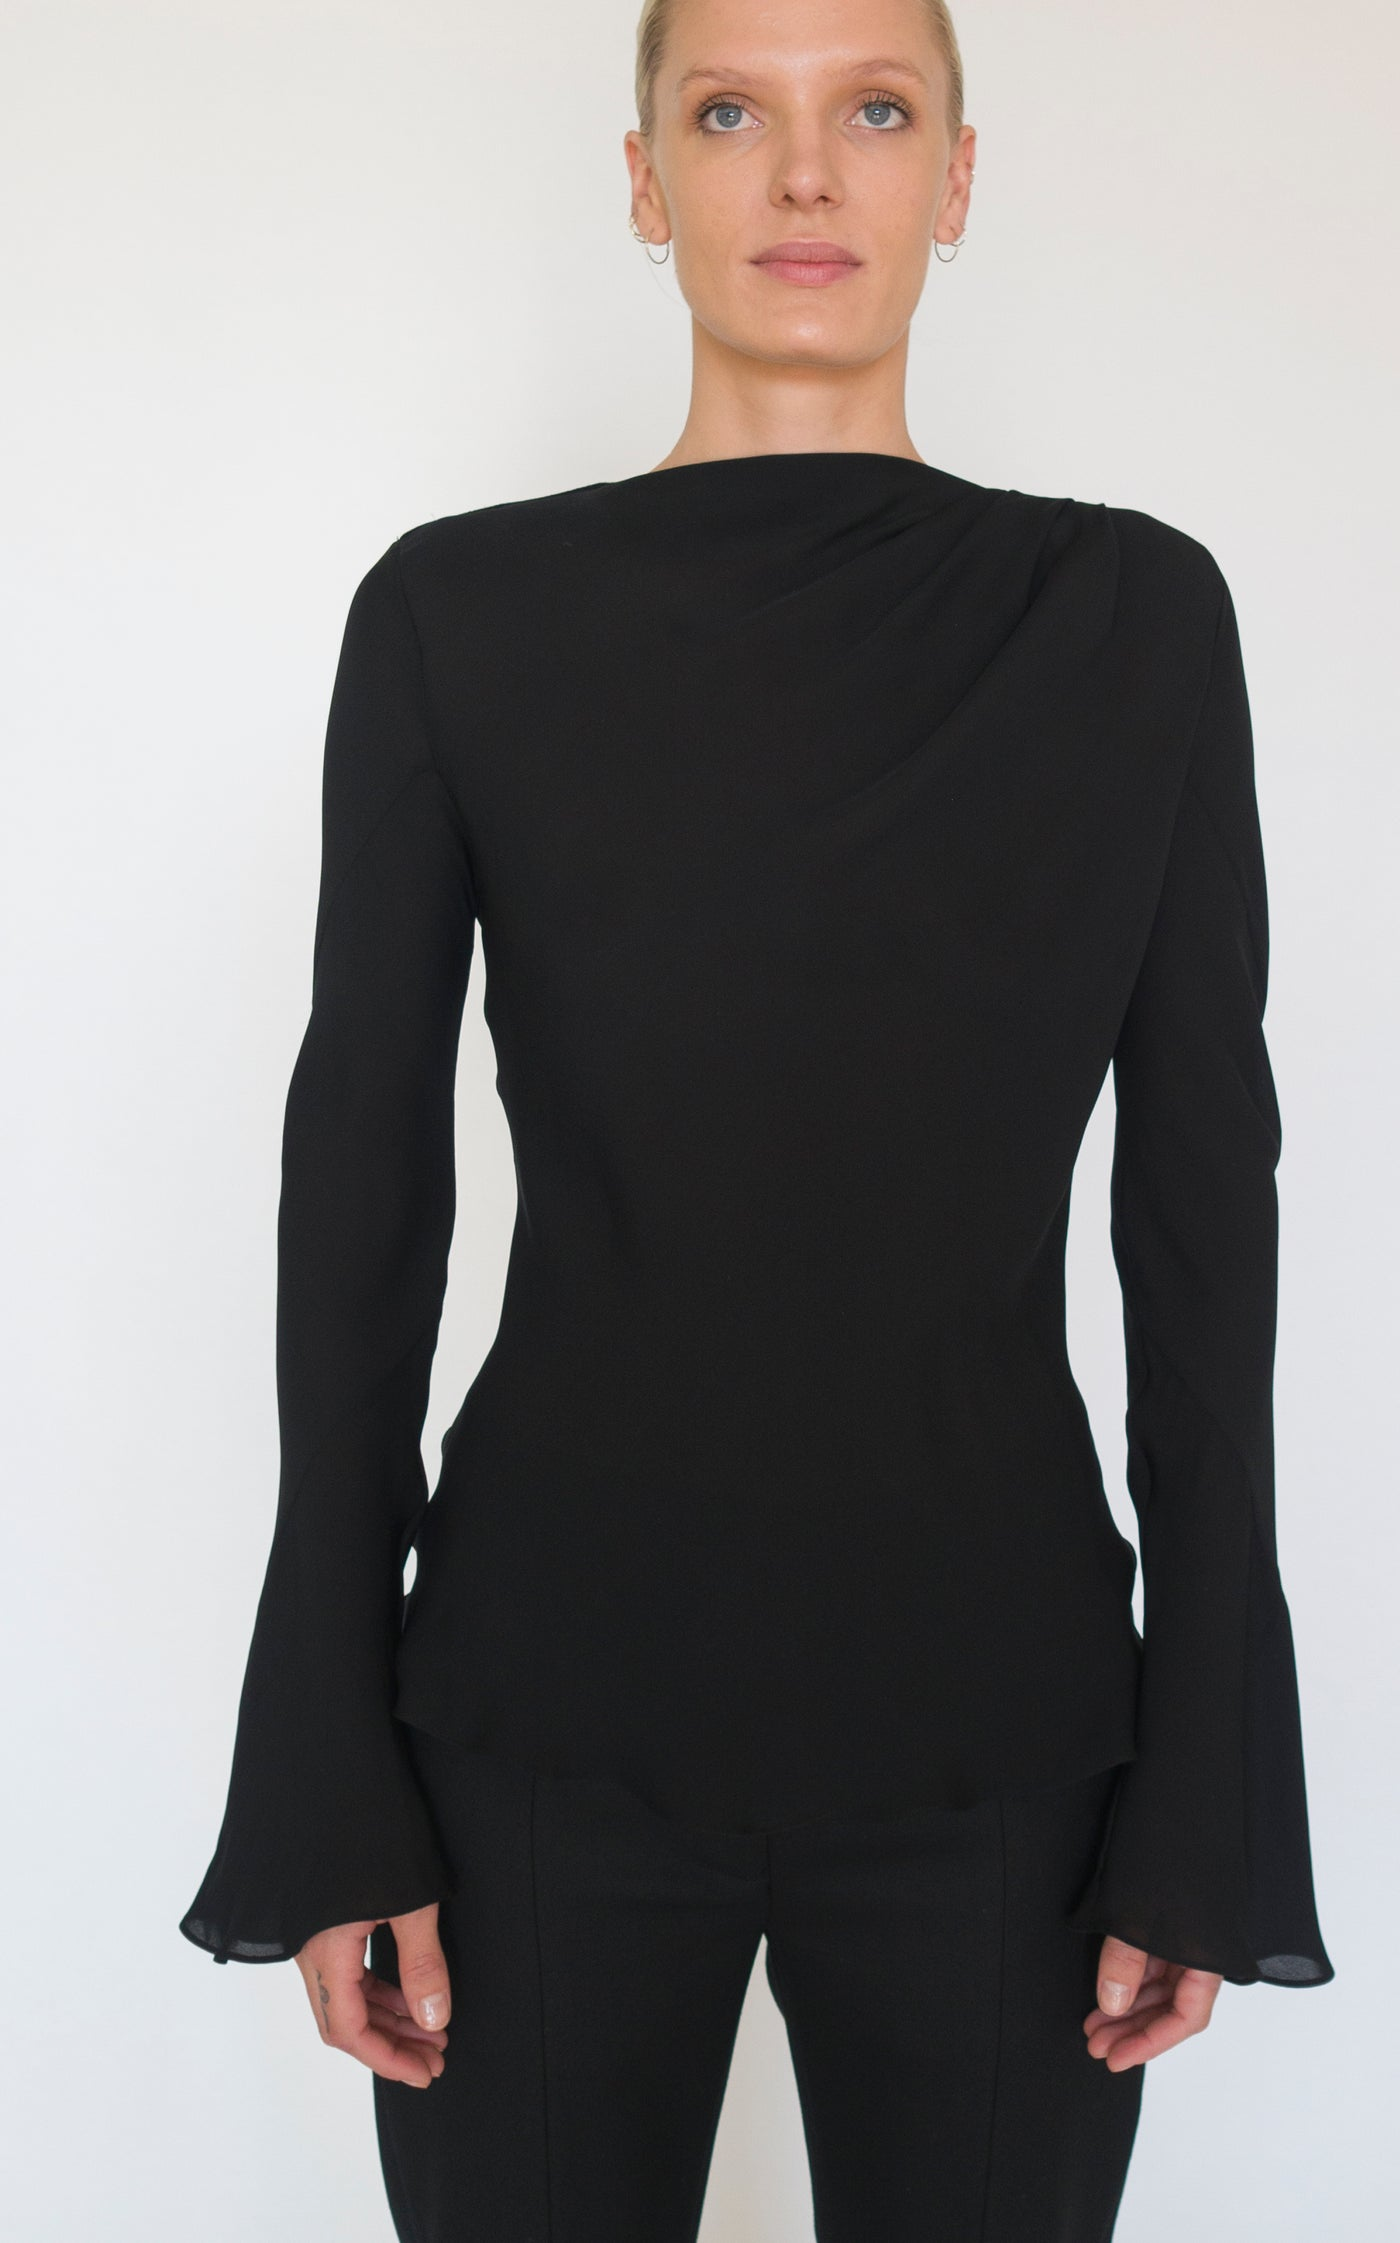 Preorder Double Helix Long Sleeve Top | Black